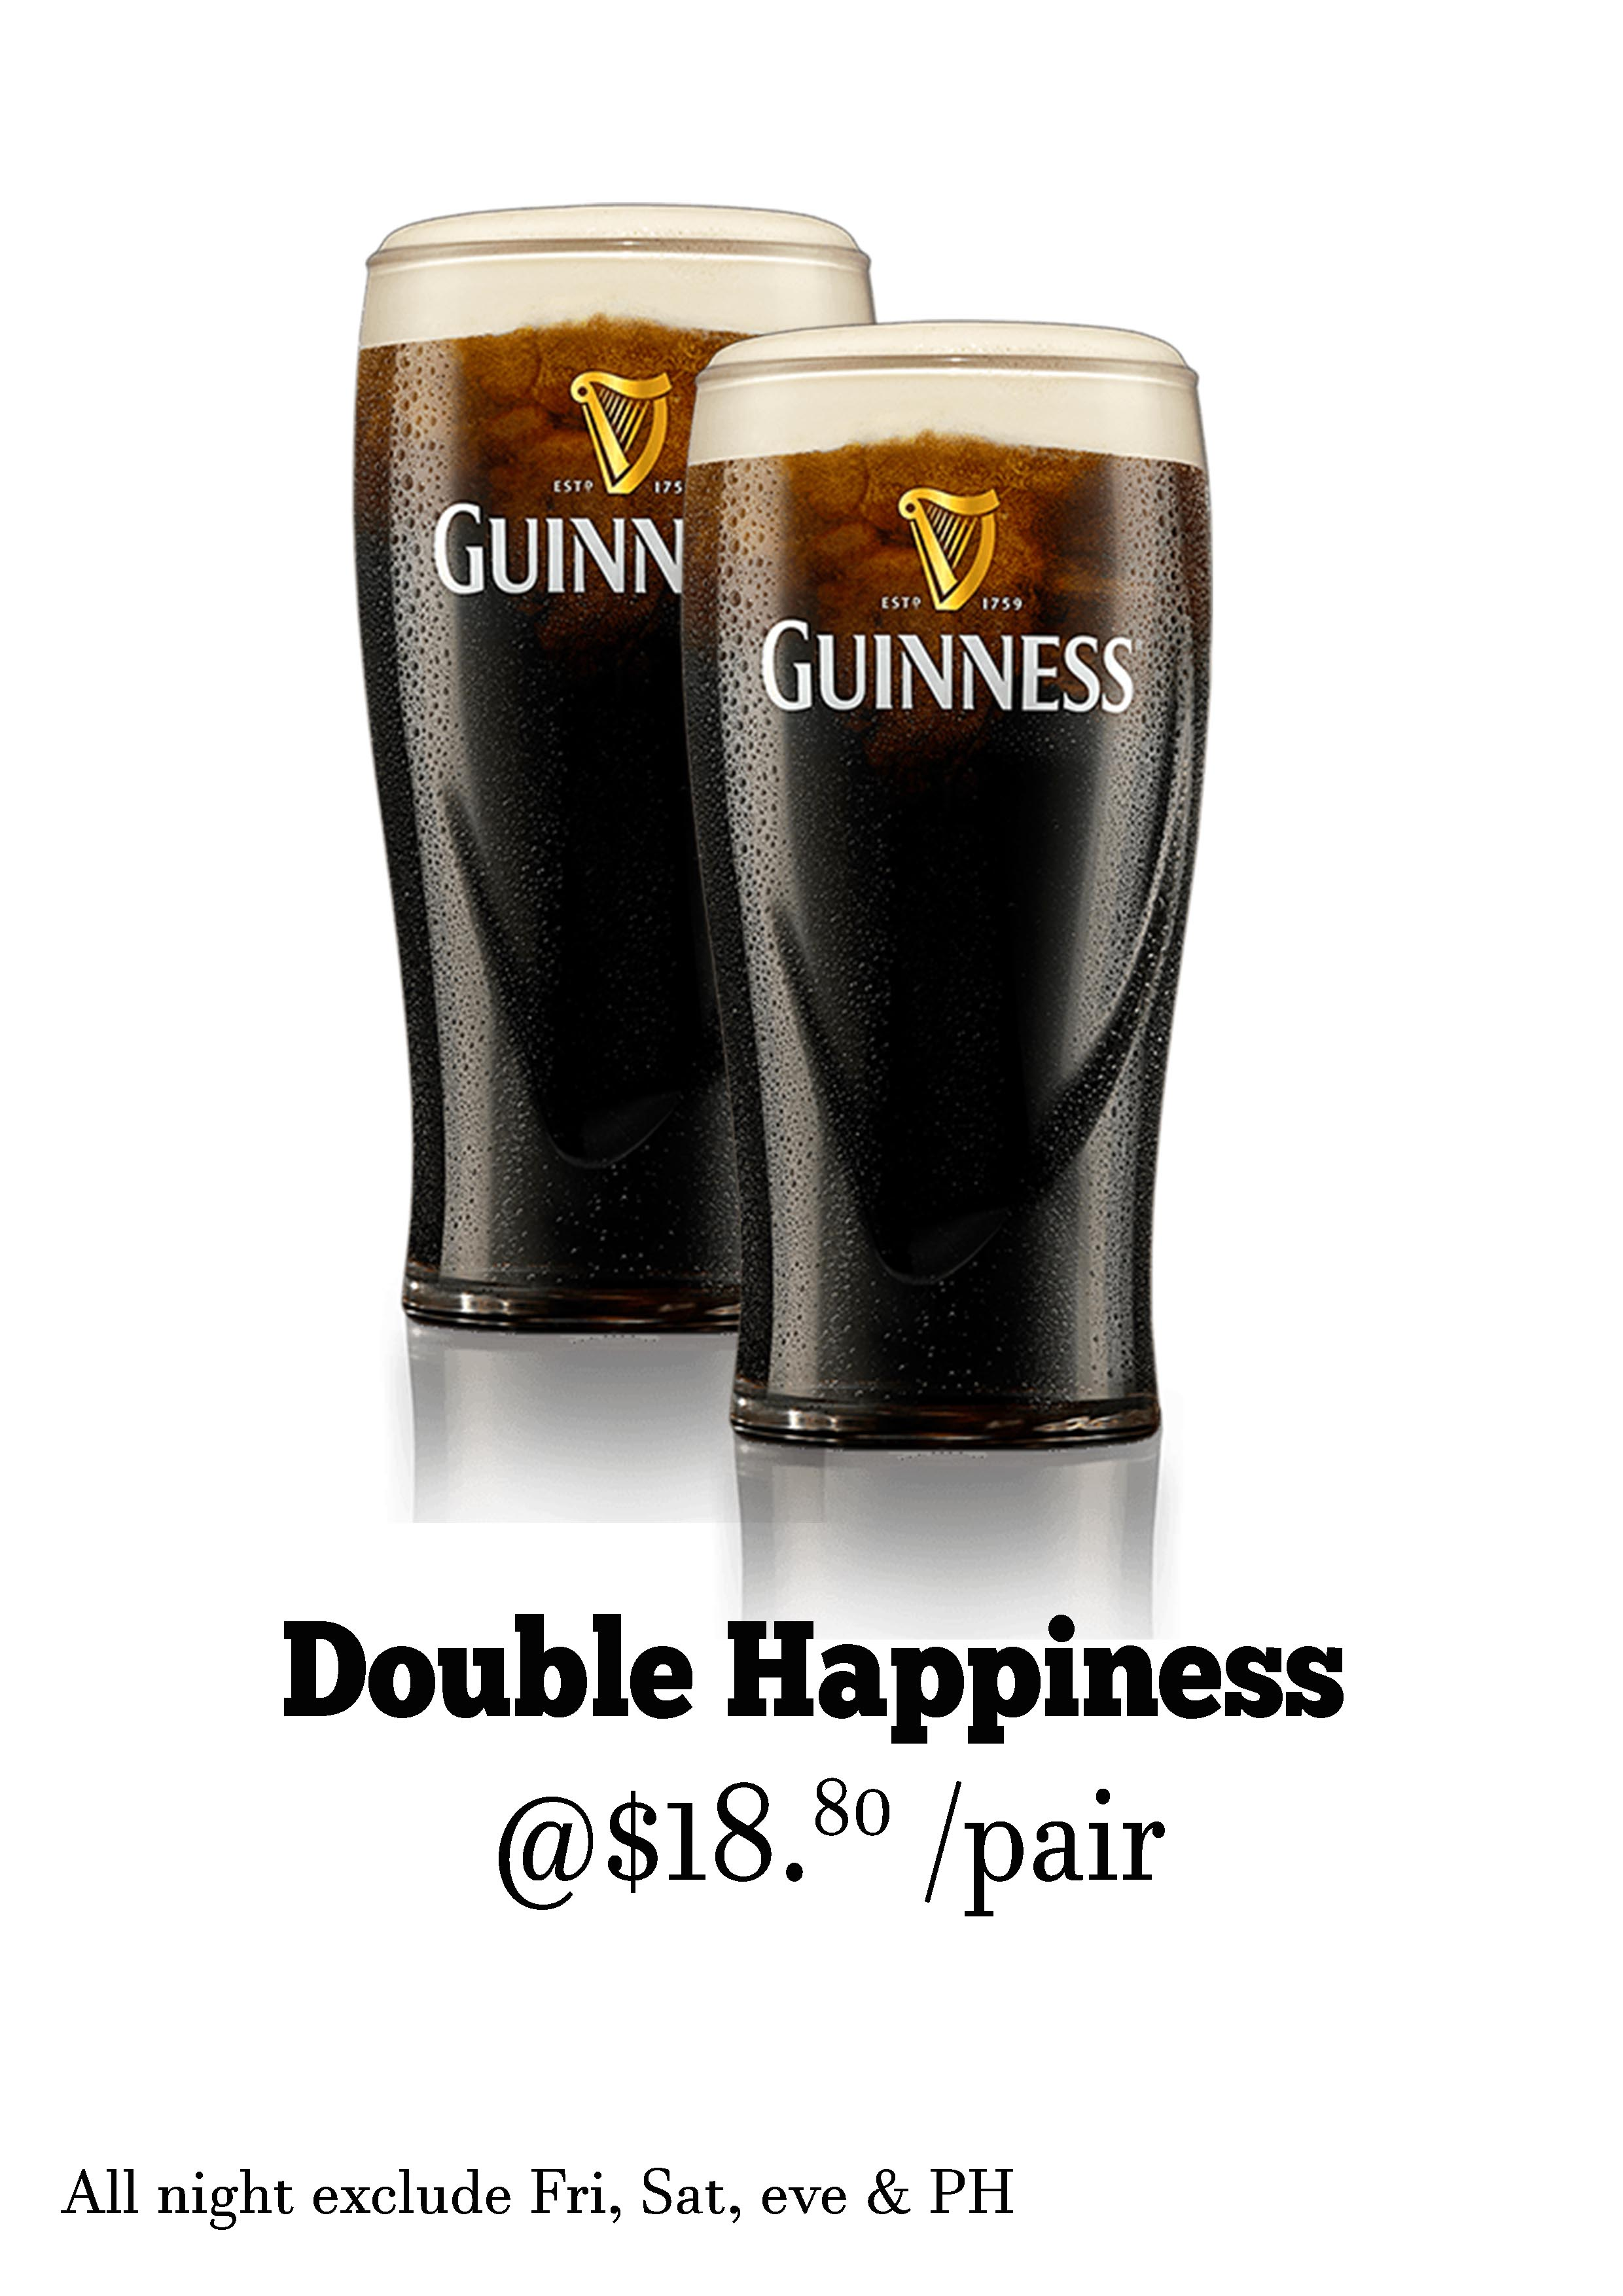 Guinness happiness promo